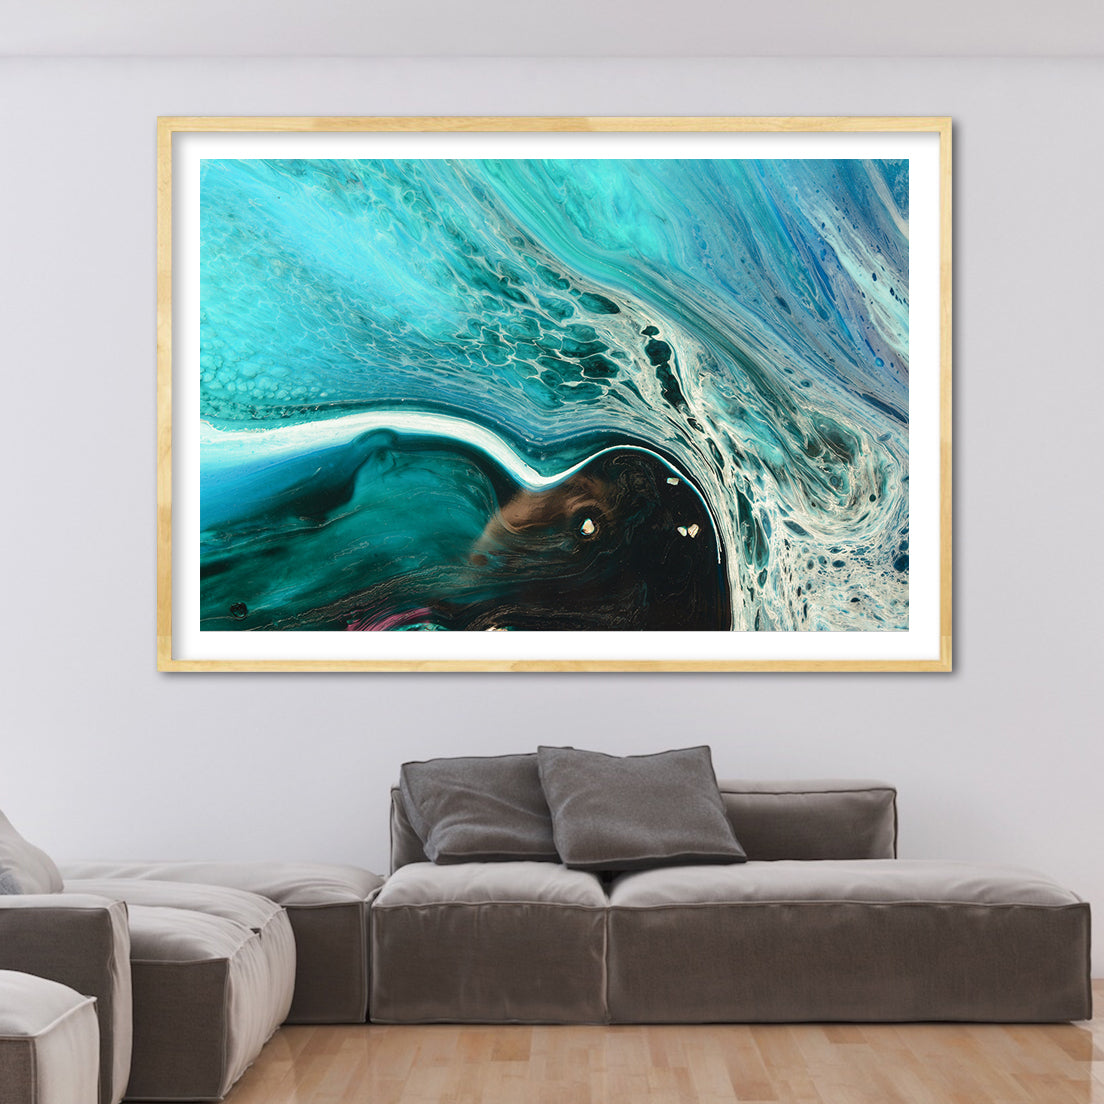 Abstract Seascape. Rise Above Inlet 2 Tropical. Art Print. Antuanelle 4 Tropical Artwork. Limited Edition Print